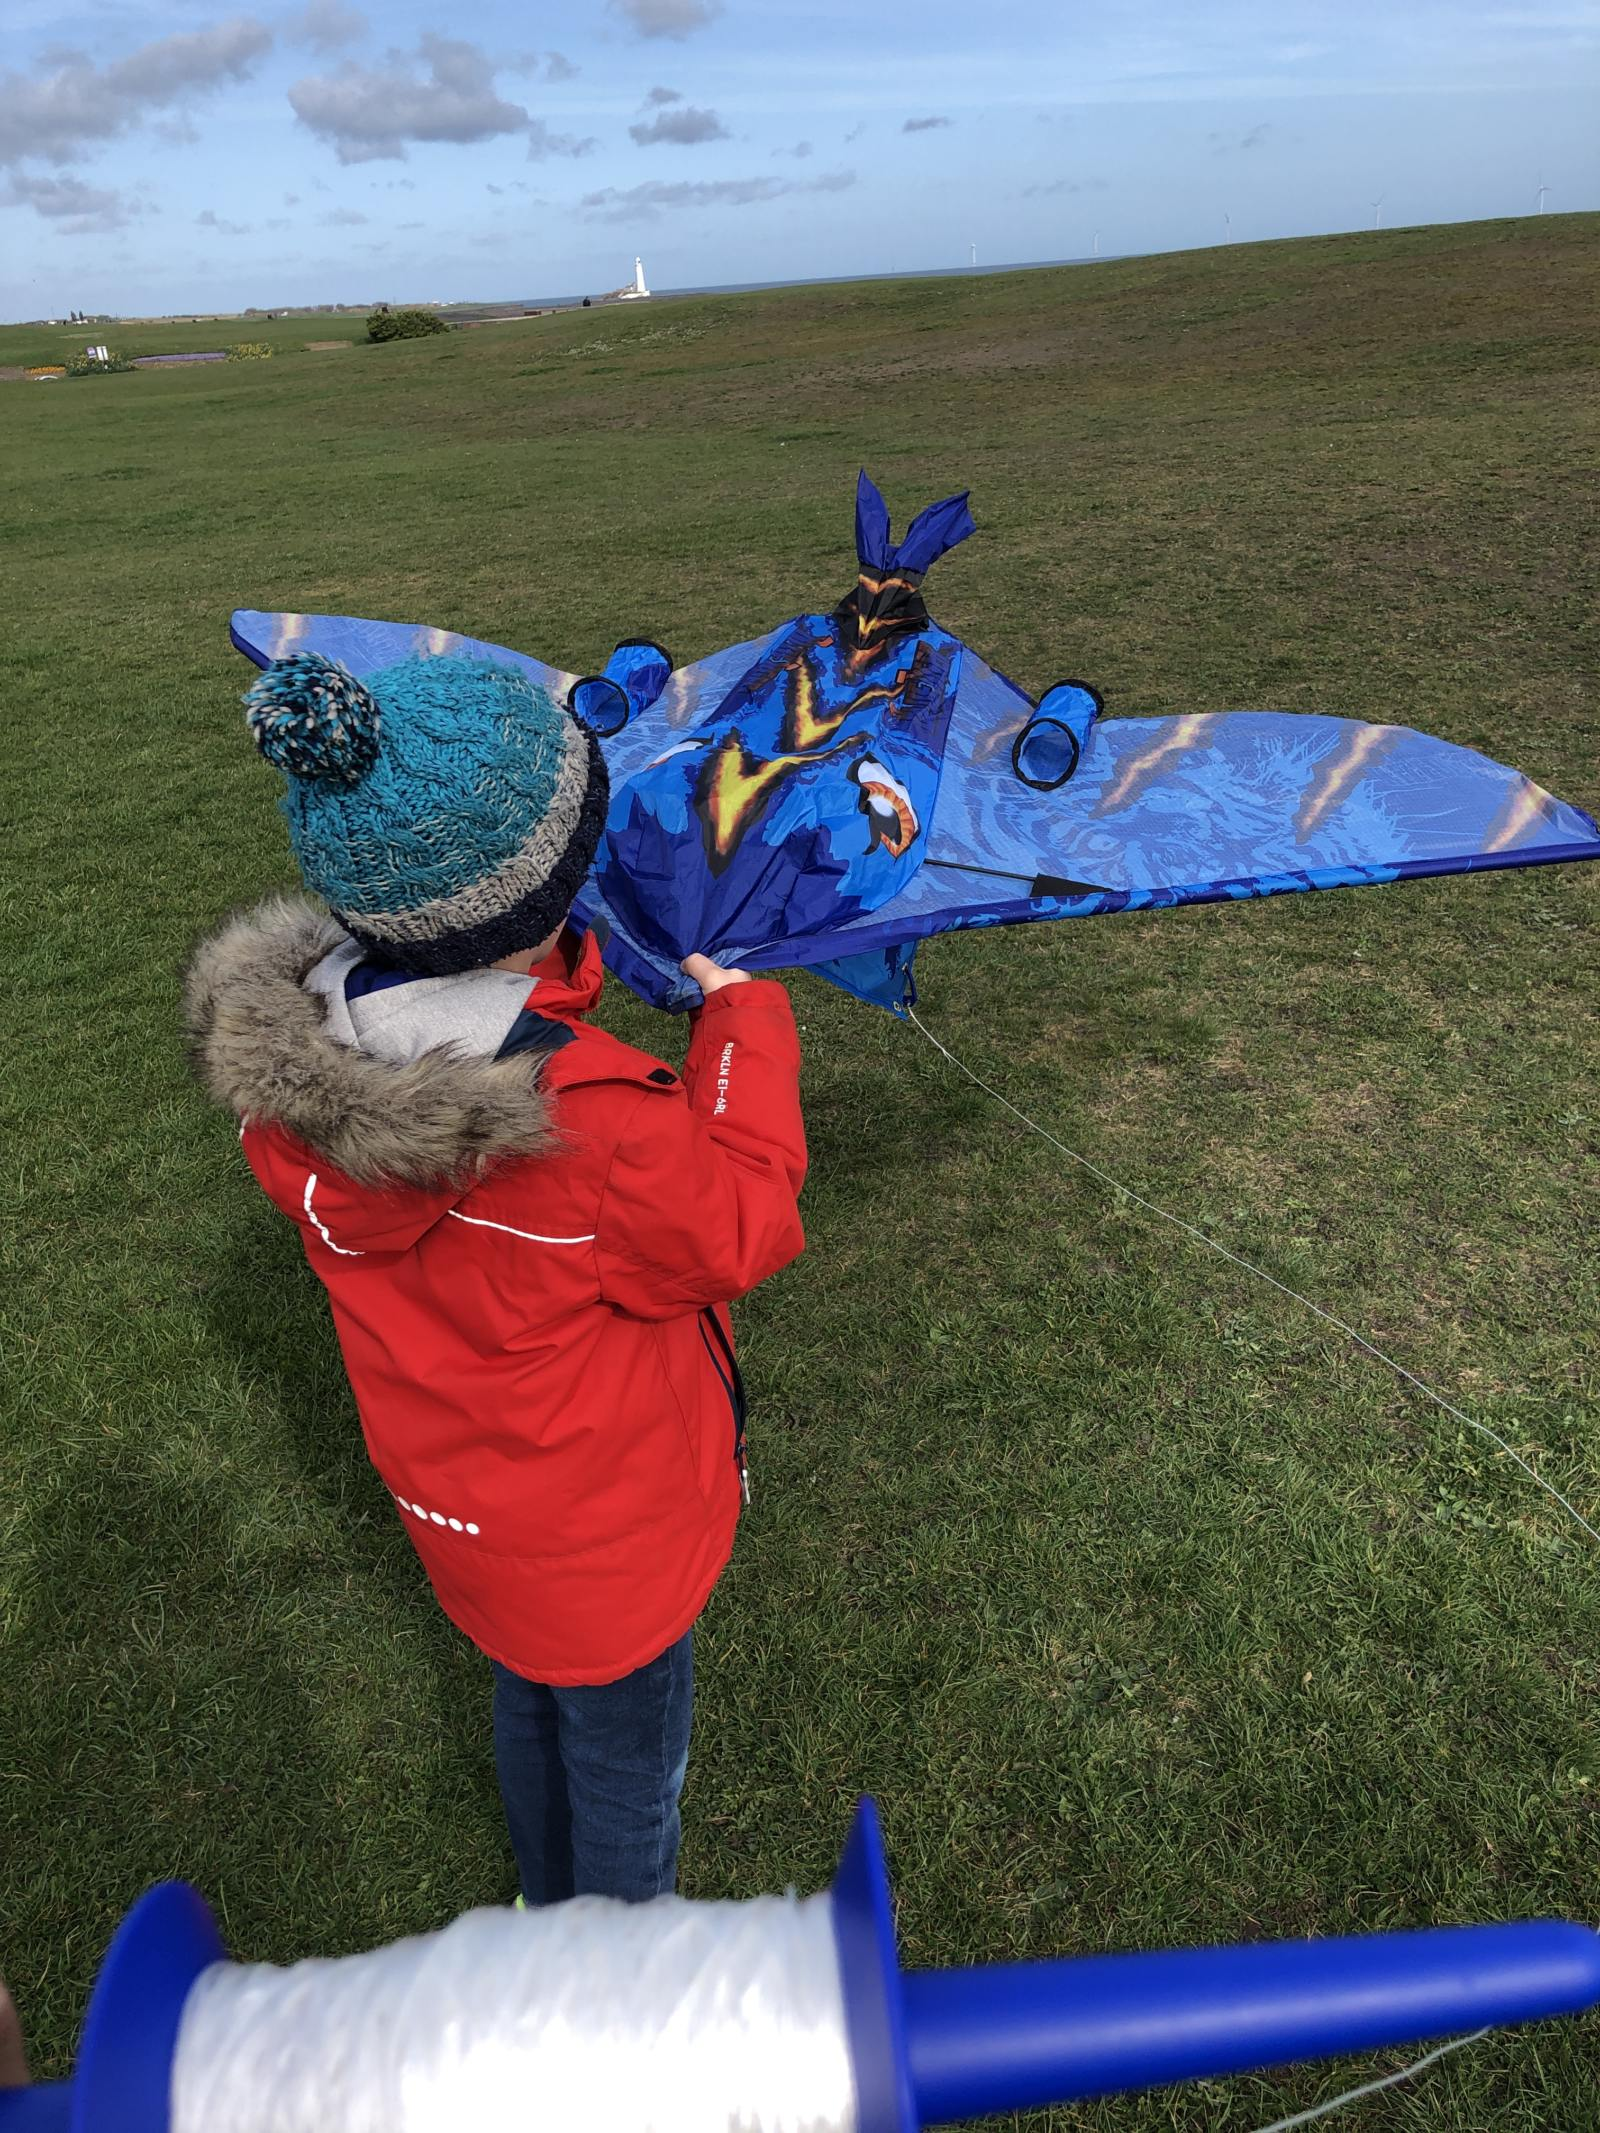 getting ready to send the kitedrone kite up in the air